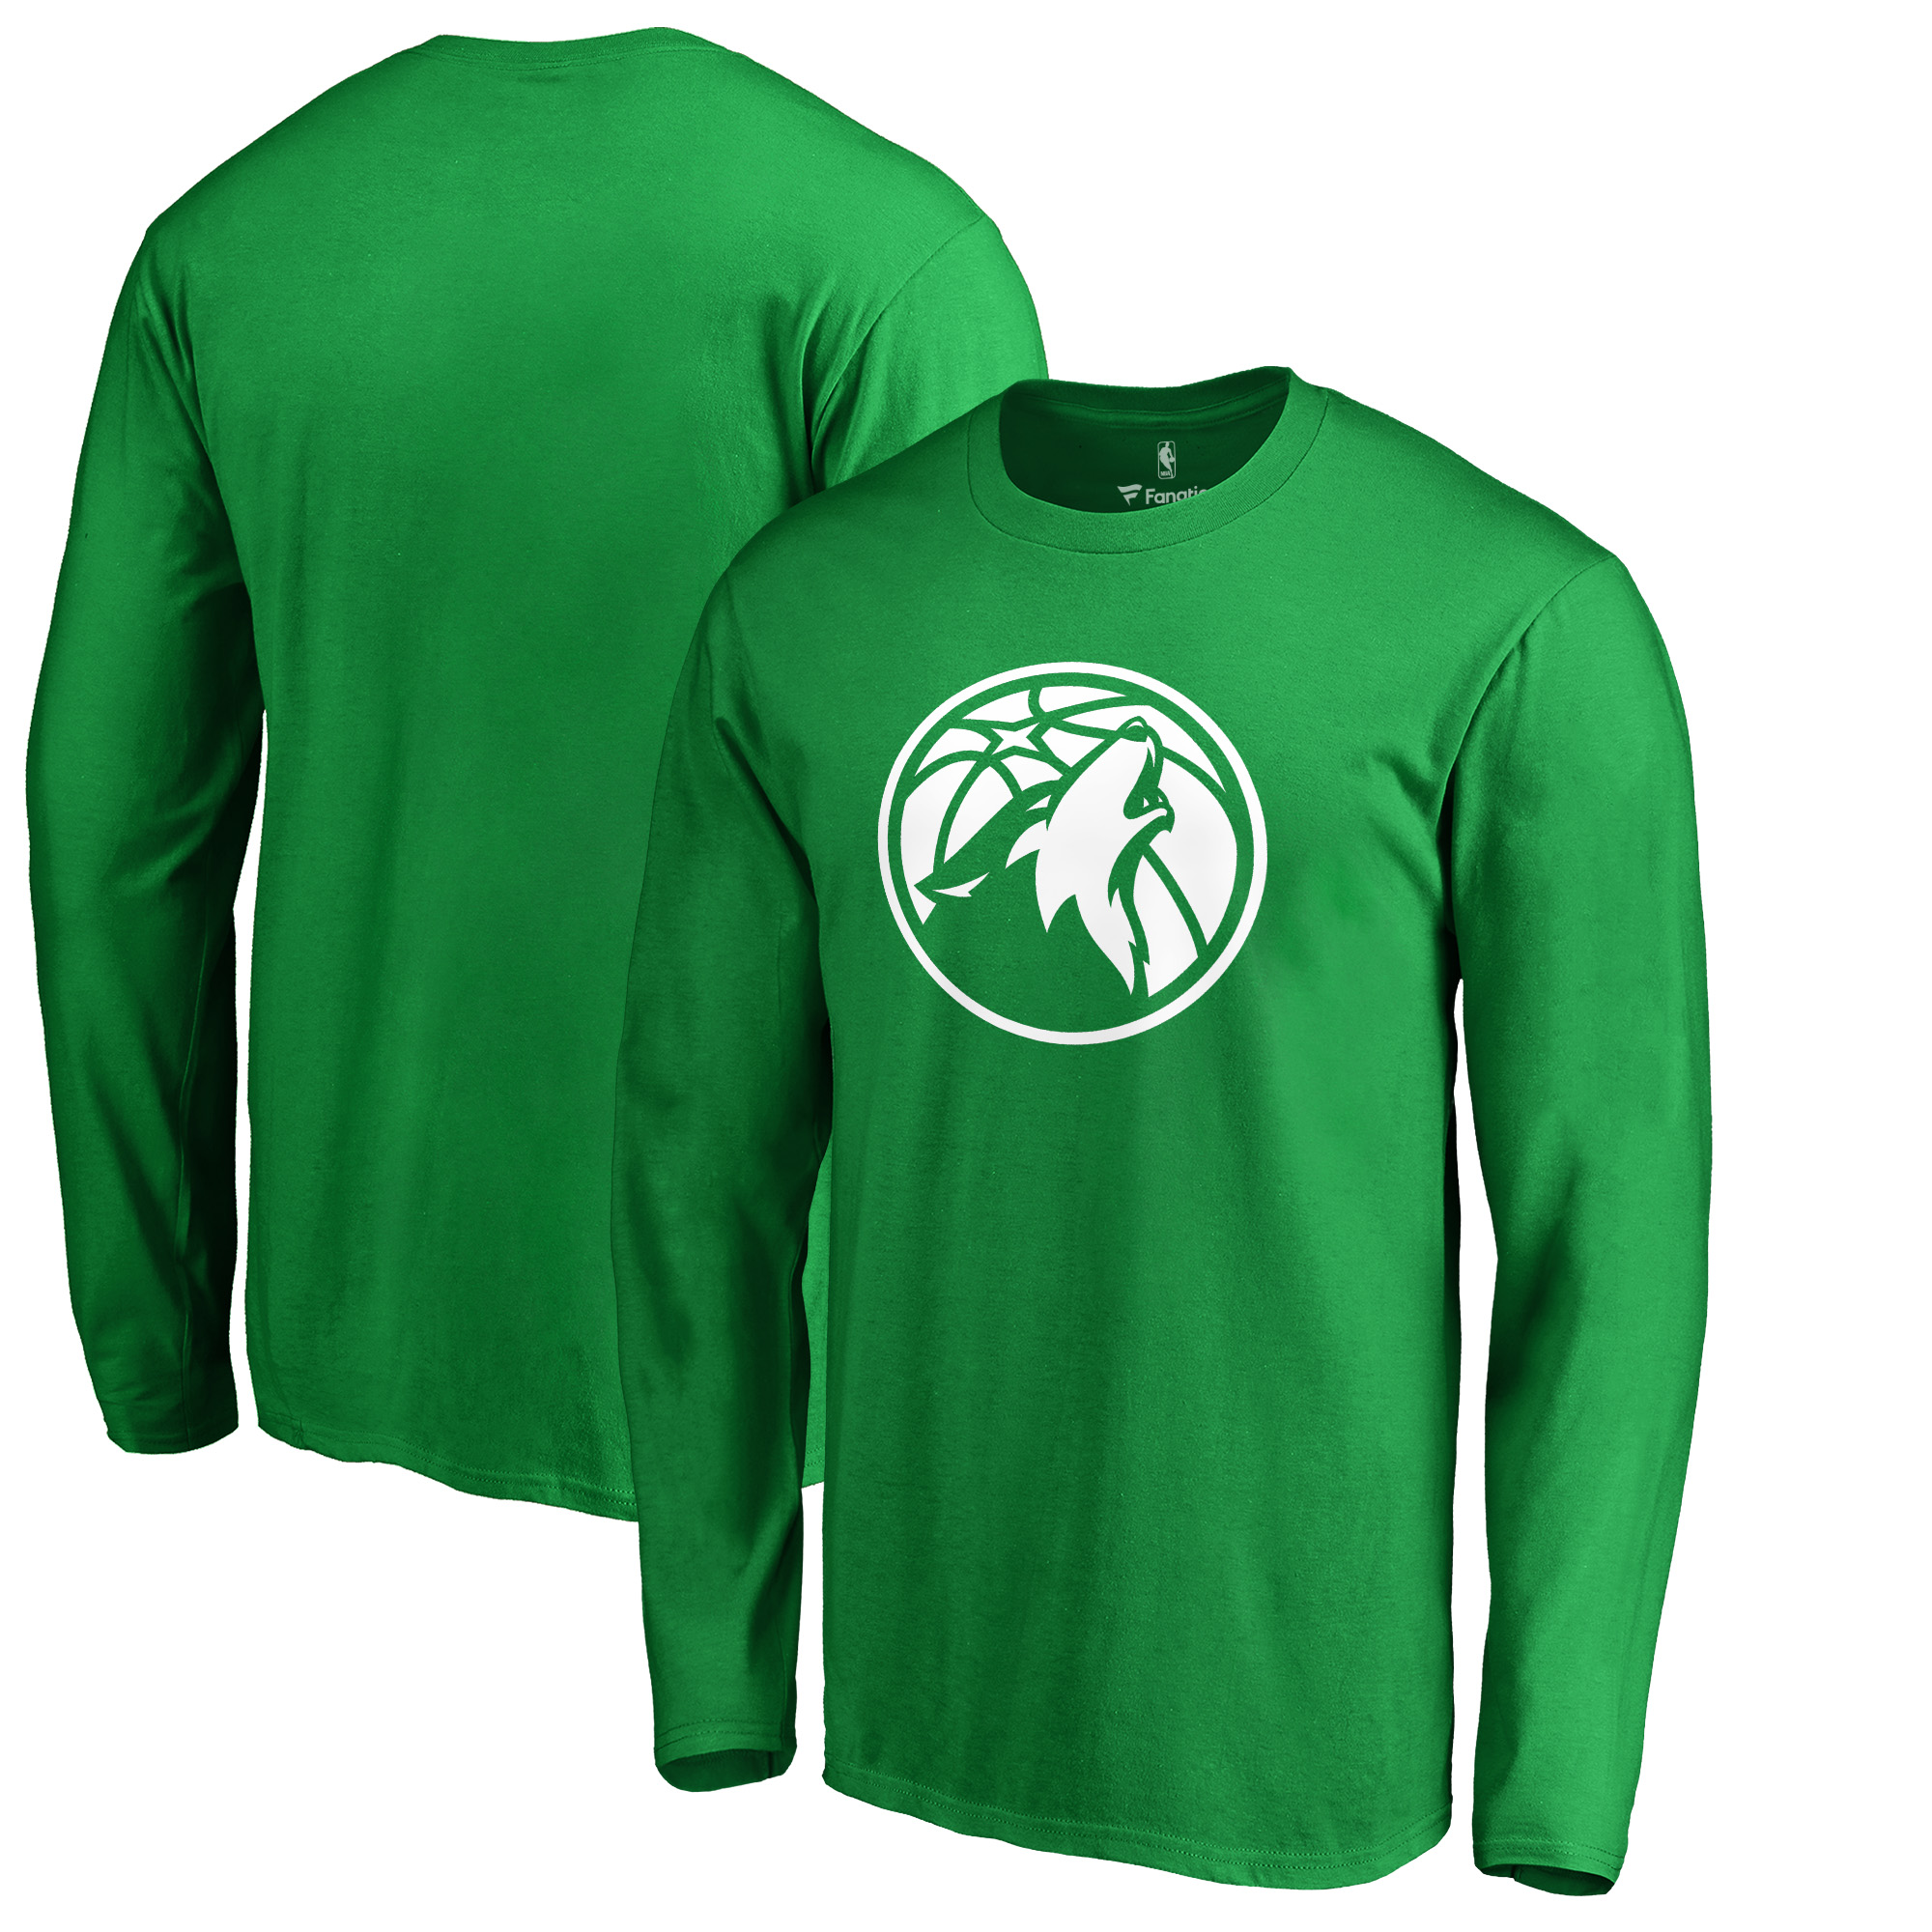 Minnesota Timberwolves Fanatics Branded St. Patrick's Day White Logo Long Sleeve T-Shirt - Kelly Green